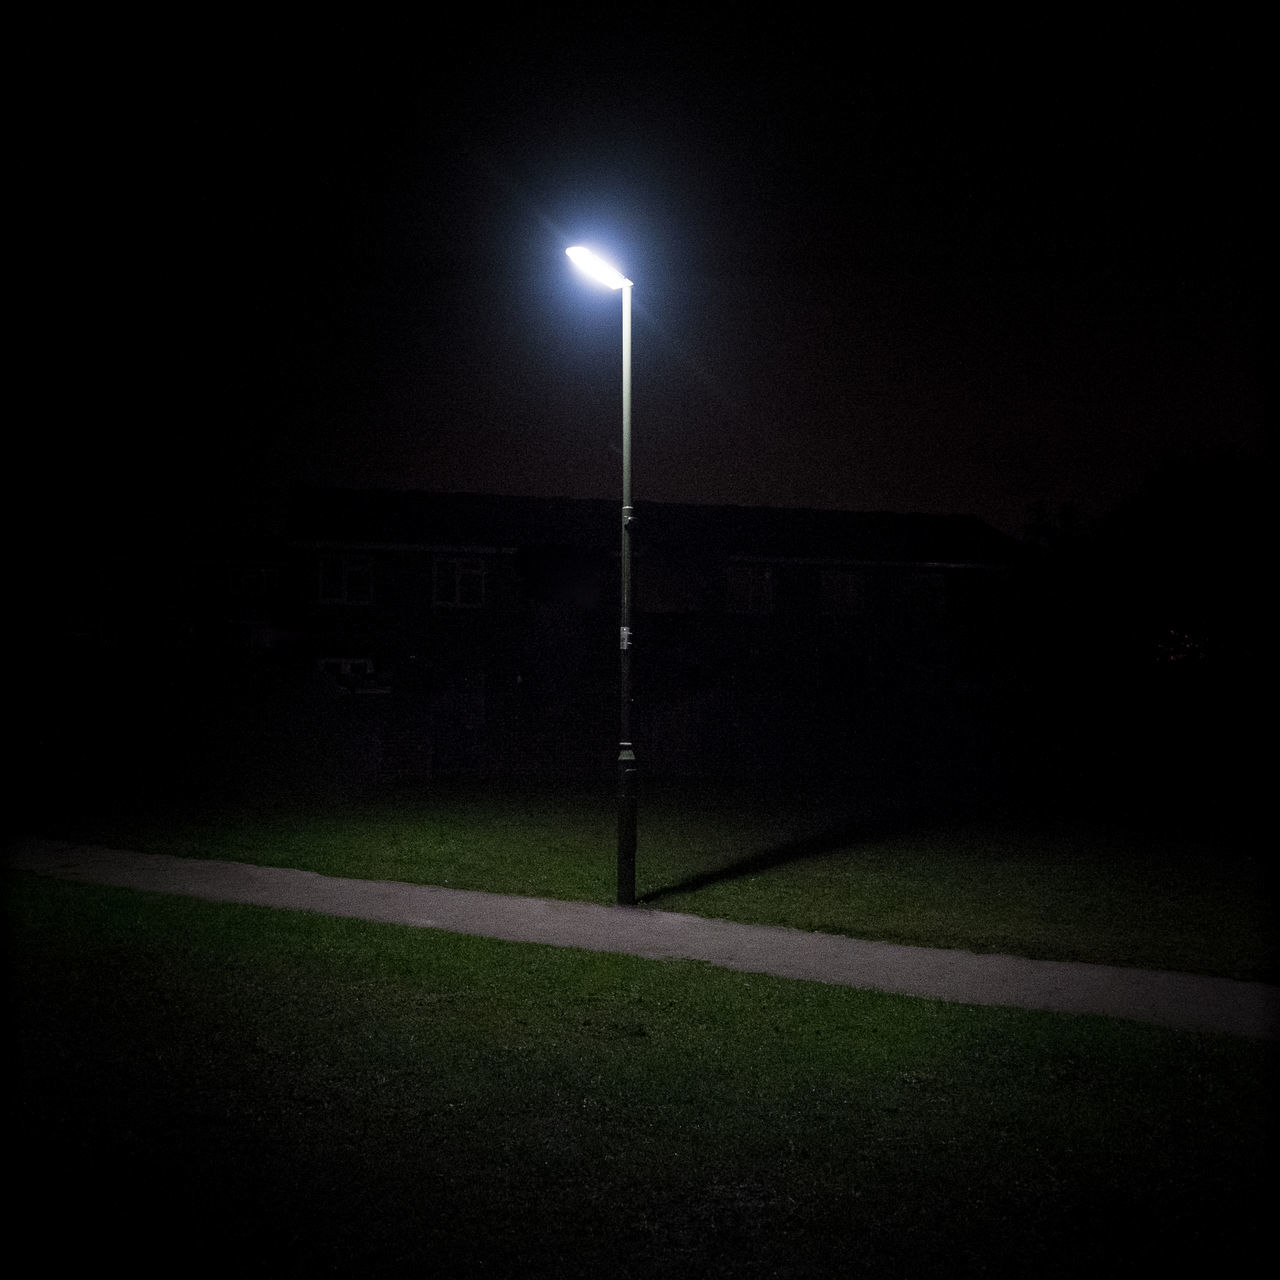 Street lamp illuminating footpath